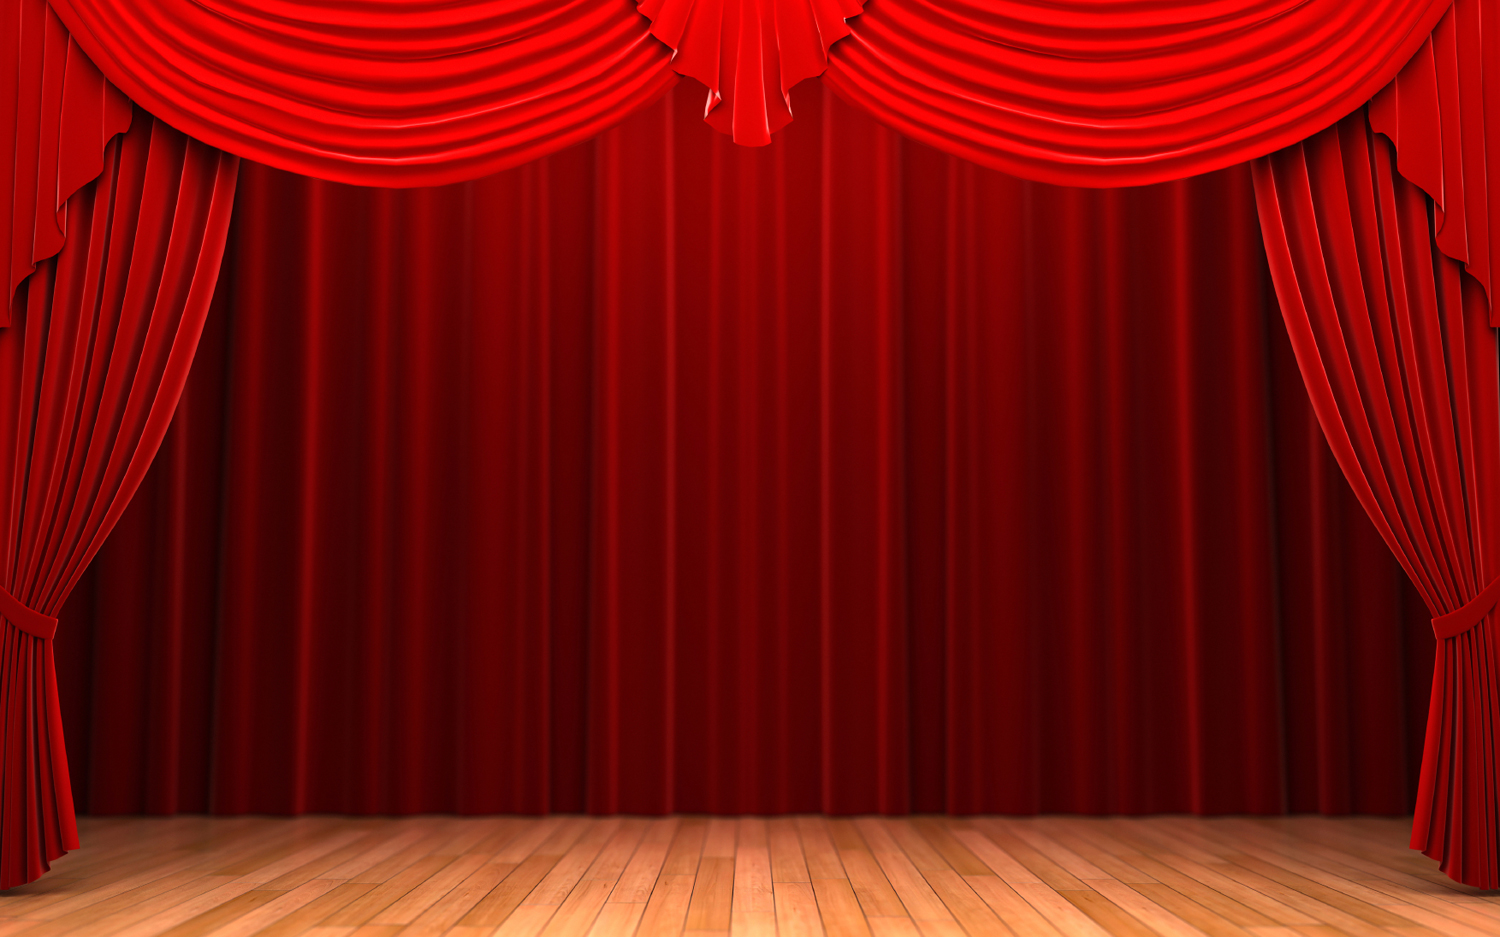 red curtains theatre - photo #18